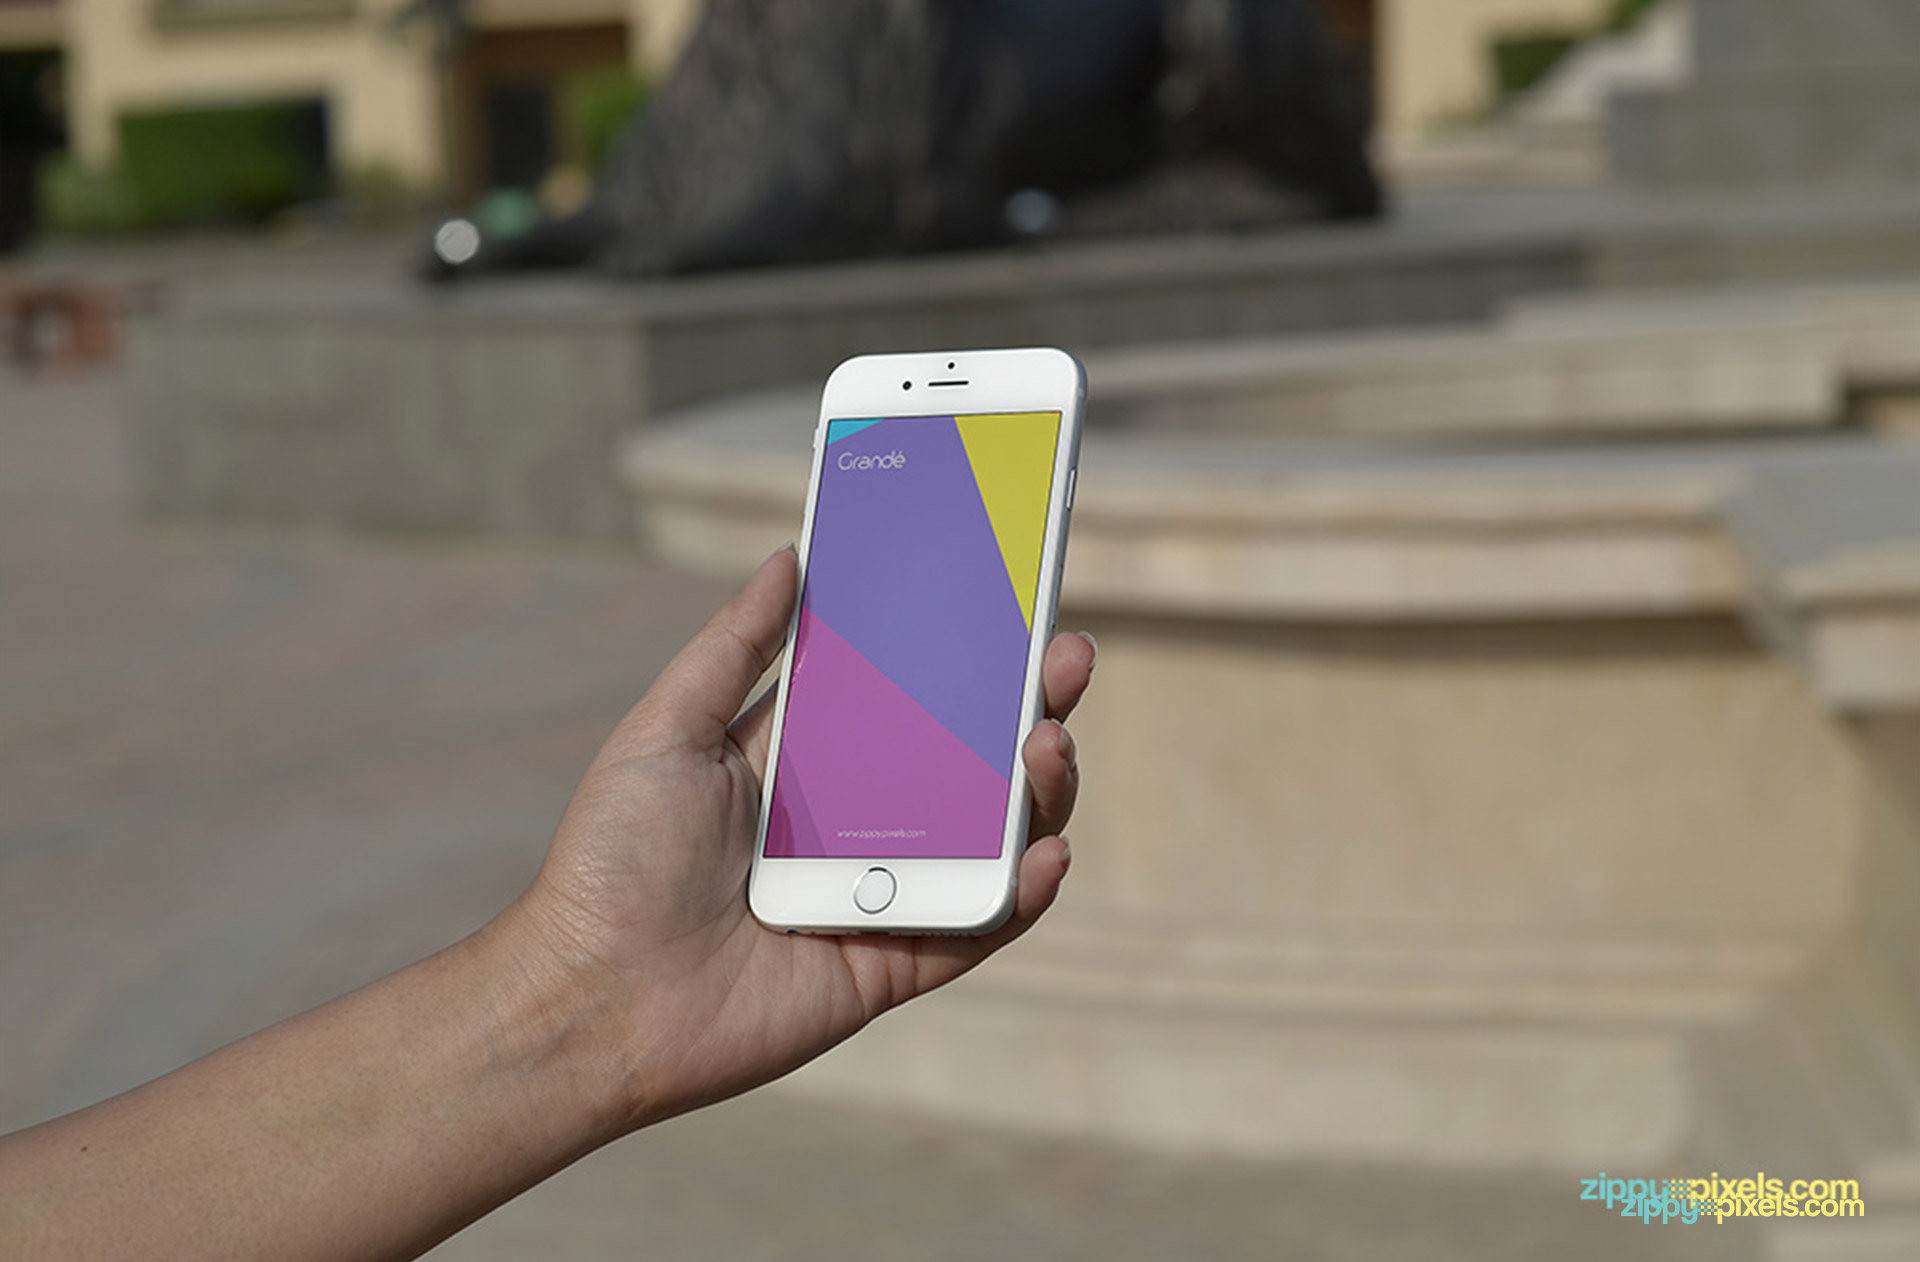 mockup of iphone 6 white portrait background outdoor